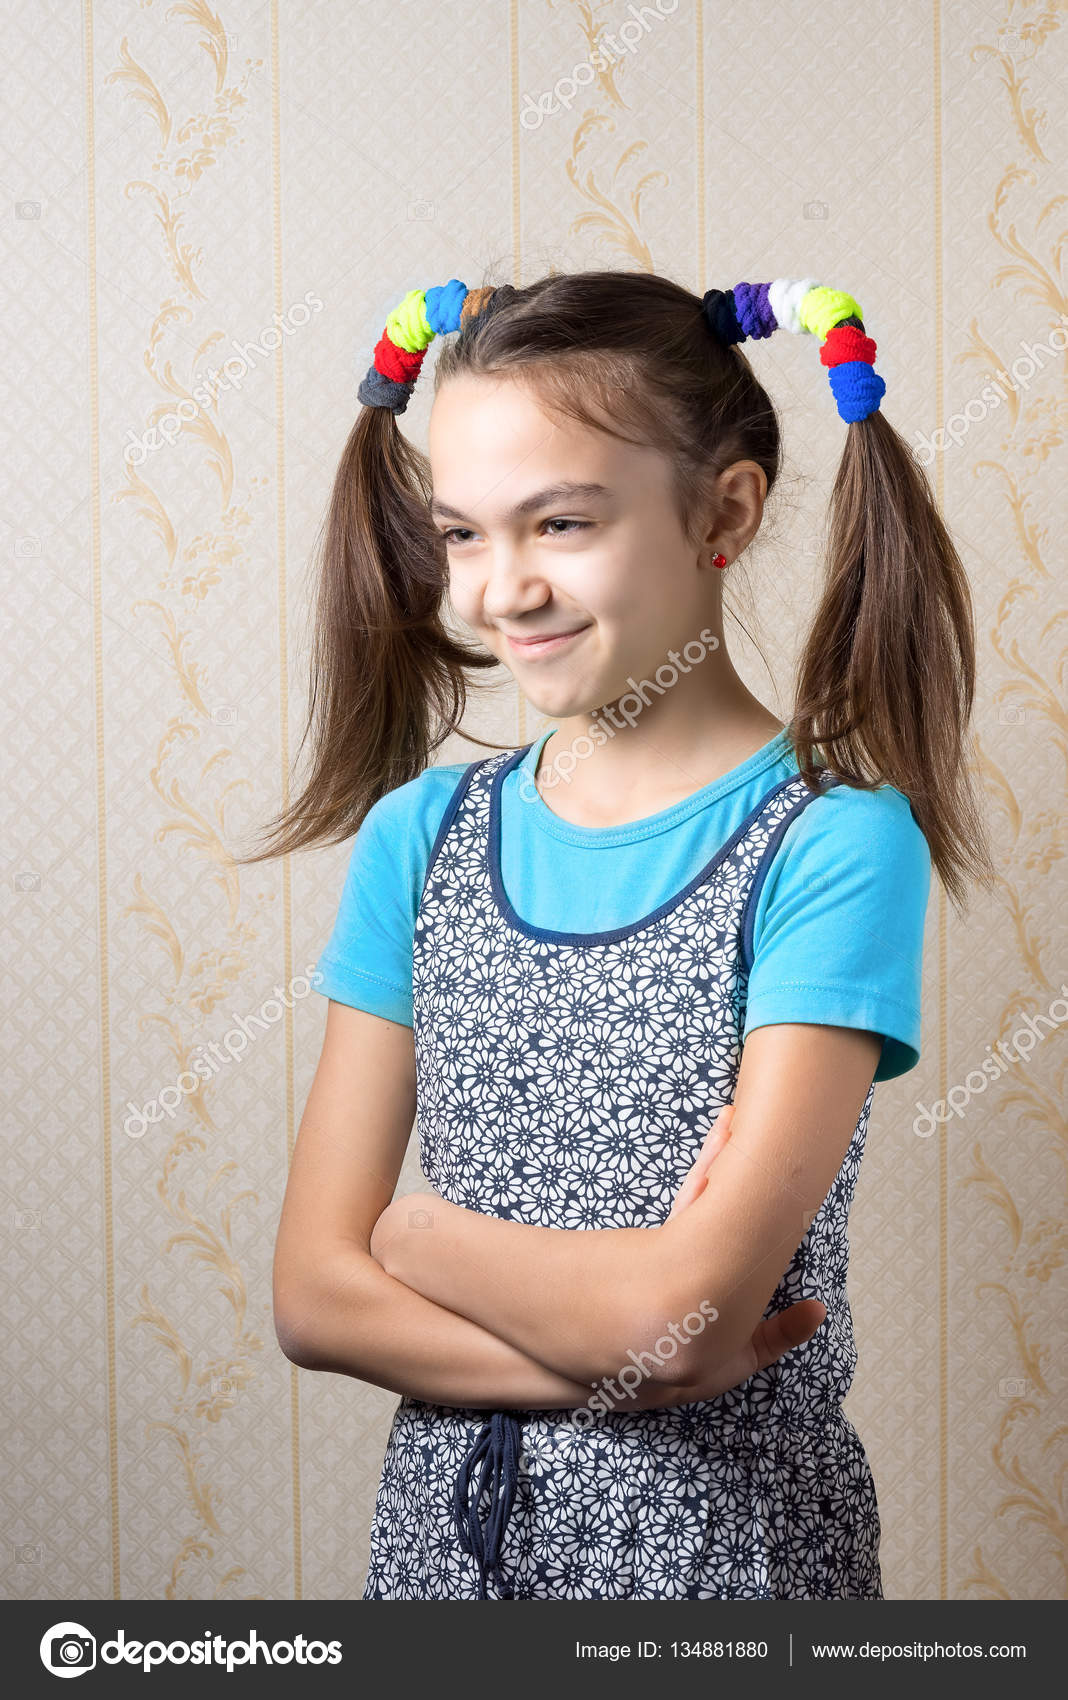 11 Year Girl Bedroom Decoration Ideas: Portrait Of A Smiling 11 Year Old Girl With Funny Tails In